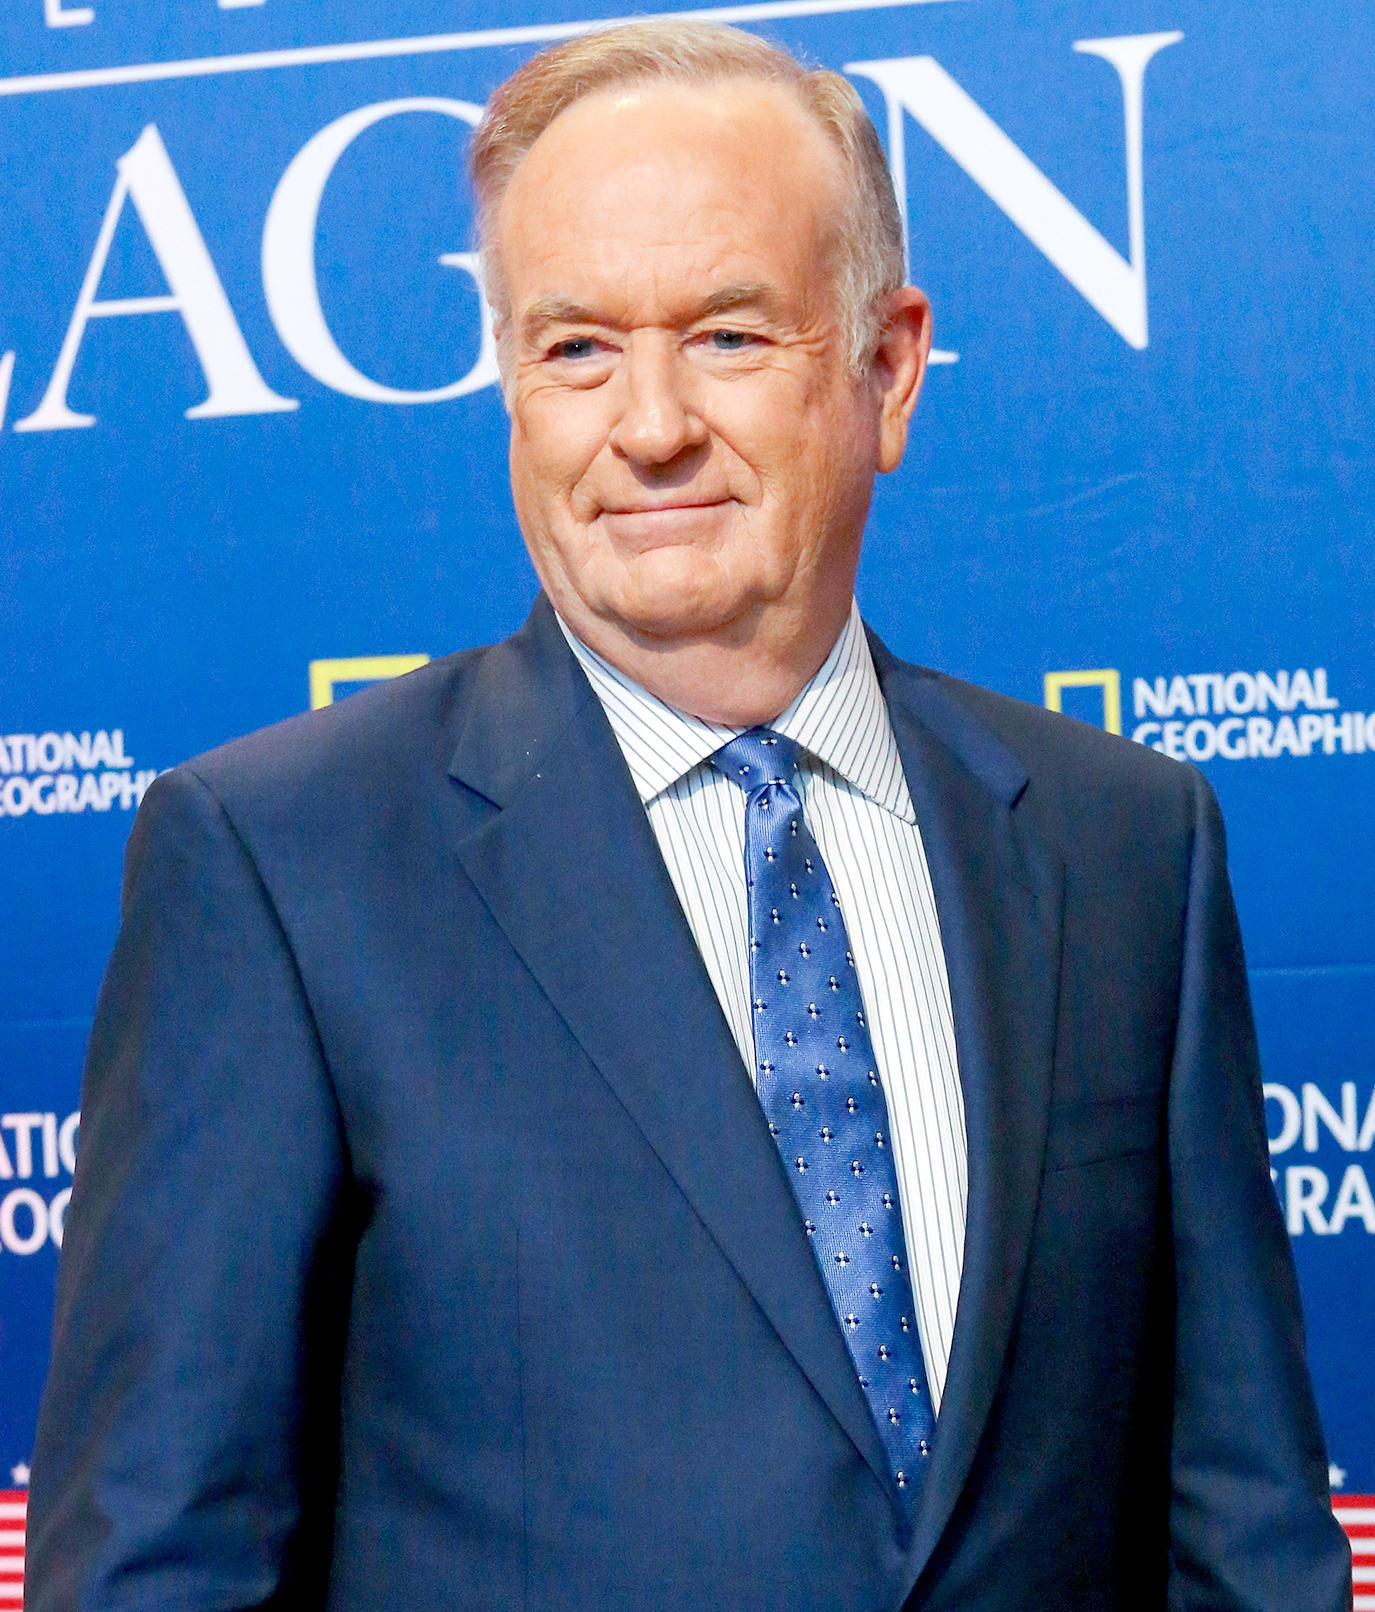 """Bill O'Reilly attends the """"Killing Reagan"""" Washington DC premiere at The Newseum on October 6, 2016 in Washington, DC."""